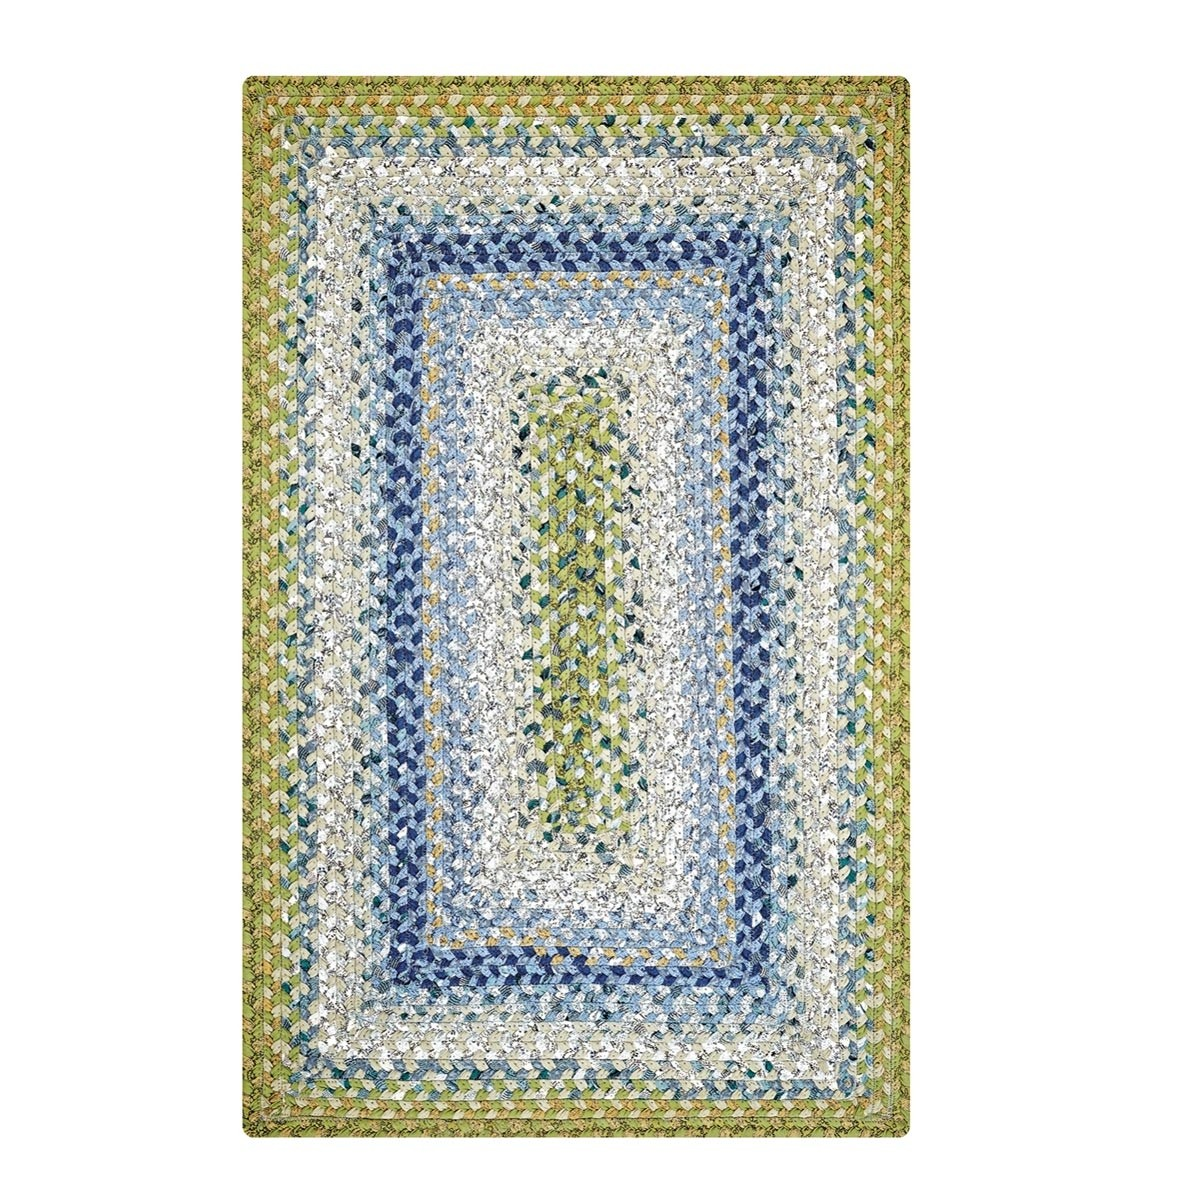 Braided Rug For Living Room: Seascape Cotton Braided Rugs